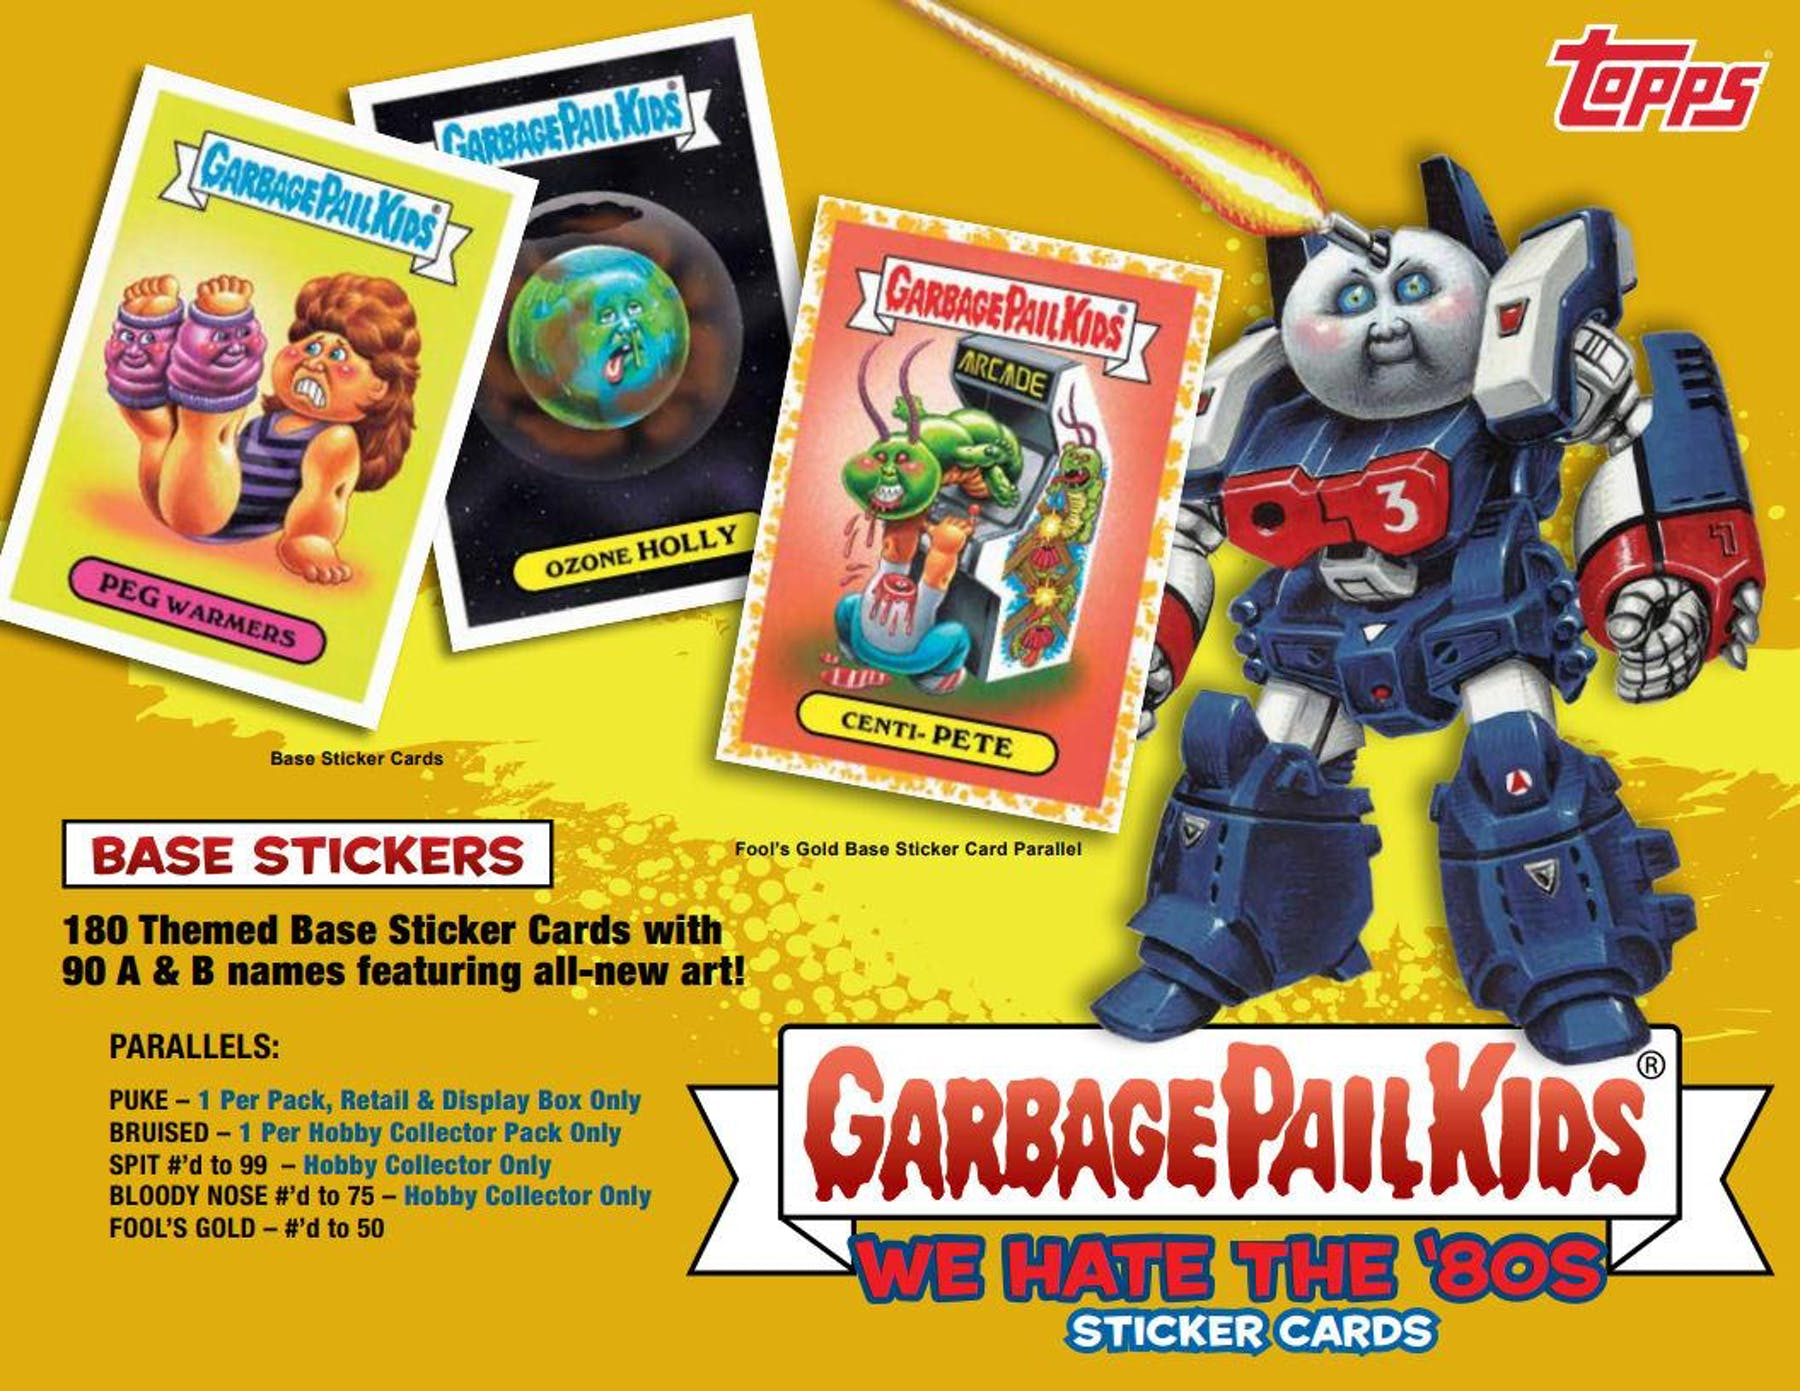 b3d3174a709 ... Garbage Pail Kids Series 1 We Hate The 80 s Collector Edition Box  (Topps 2018) ...